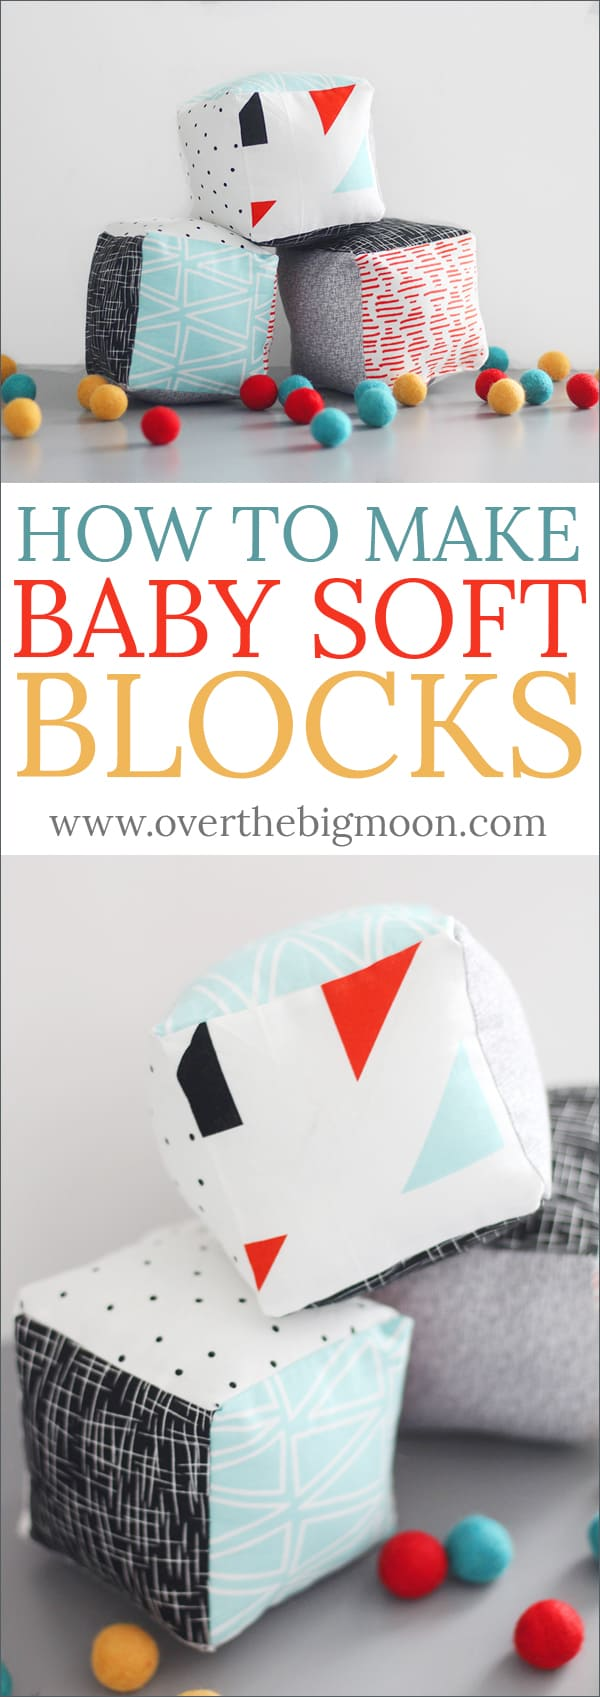 How to Make Baby Soft Blocks Tutorial - the perfect gift for a new baby! From www.overthebigmoon.com!